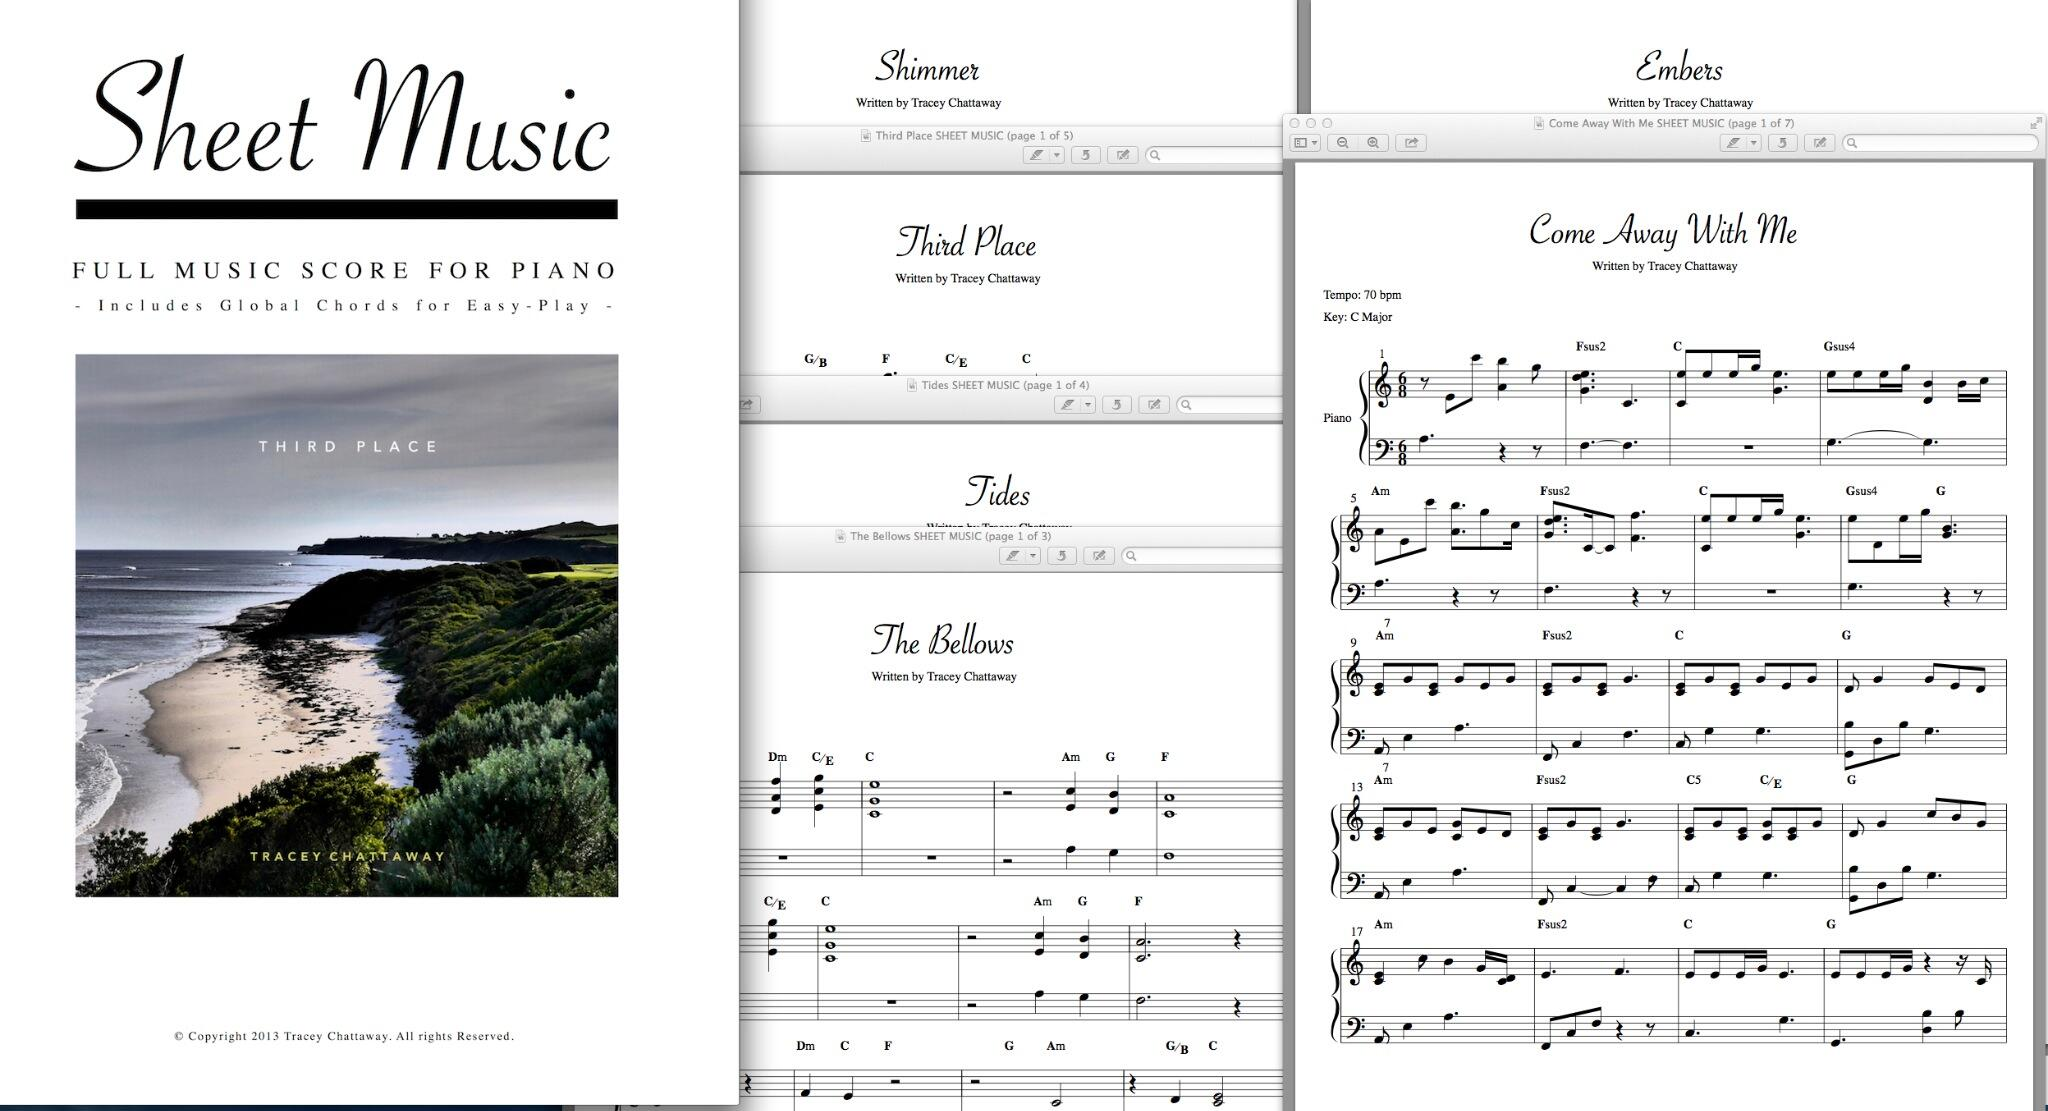 Tracey Chattaway On Twitter And Now There Is Sheet Music For The